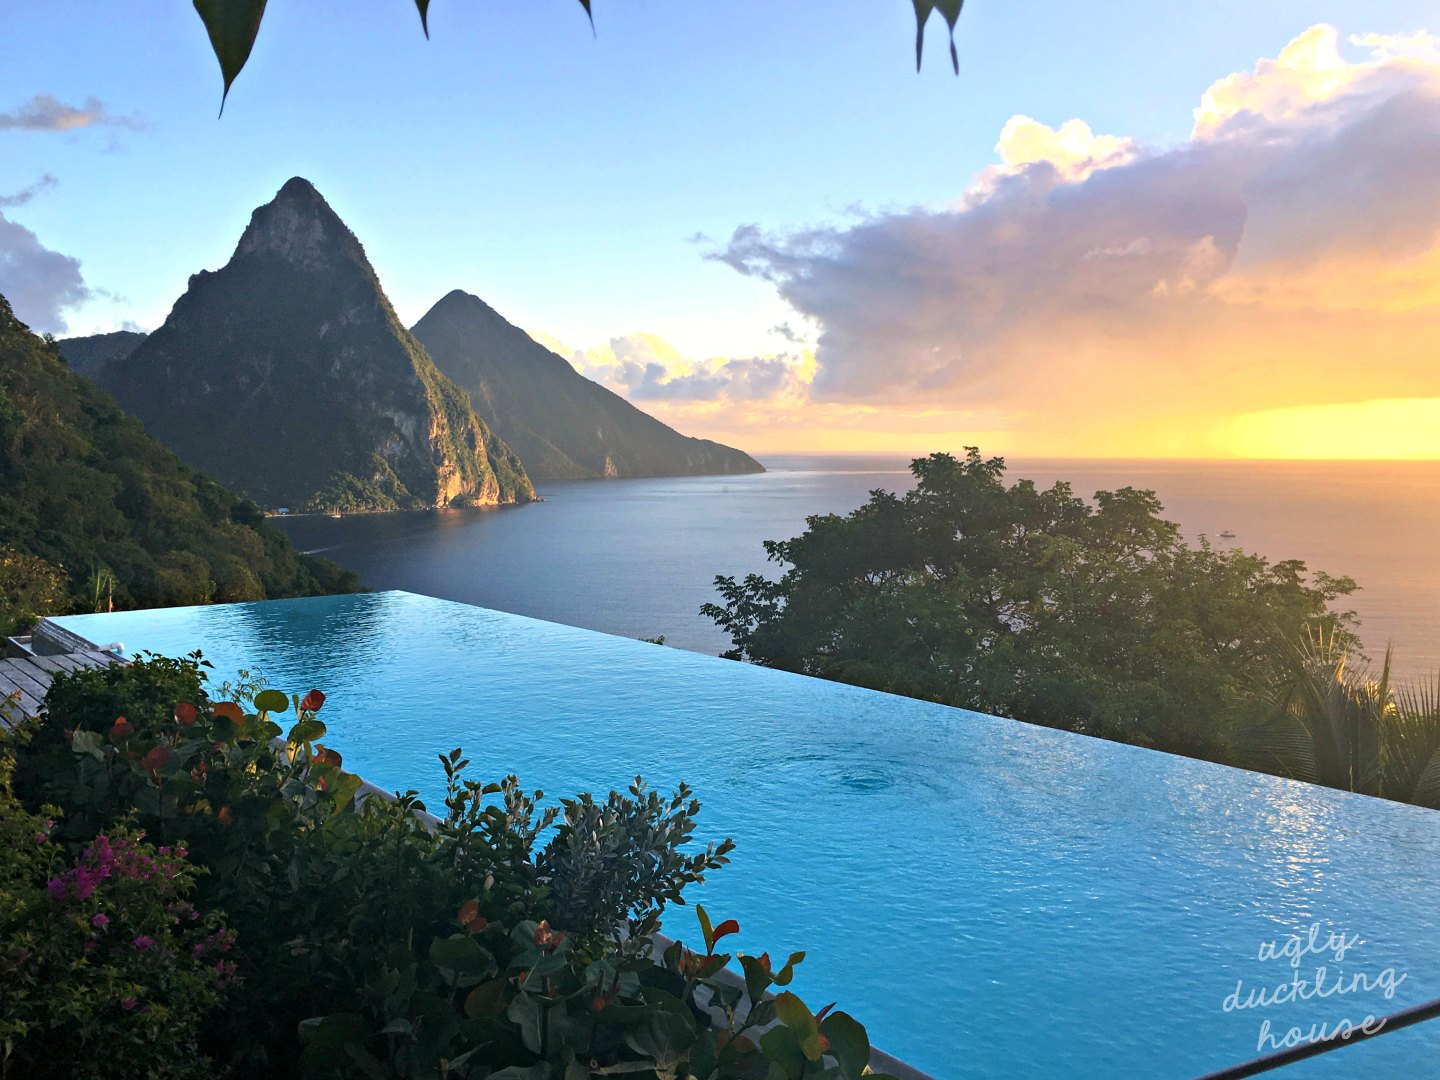 Sunset in Saint Lucia - ugly duckling house